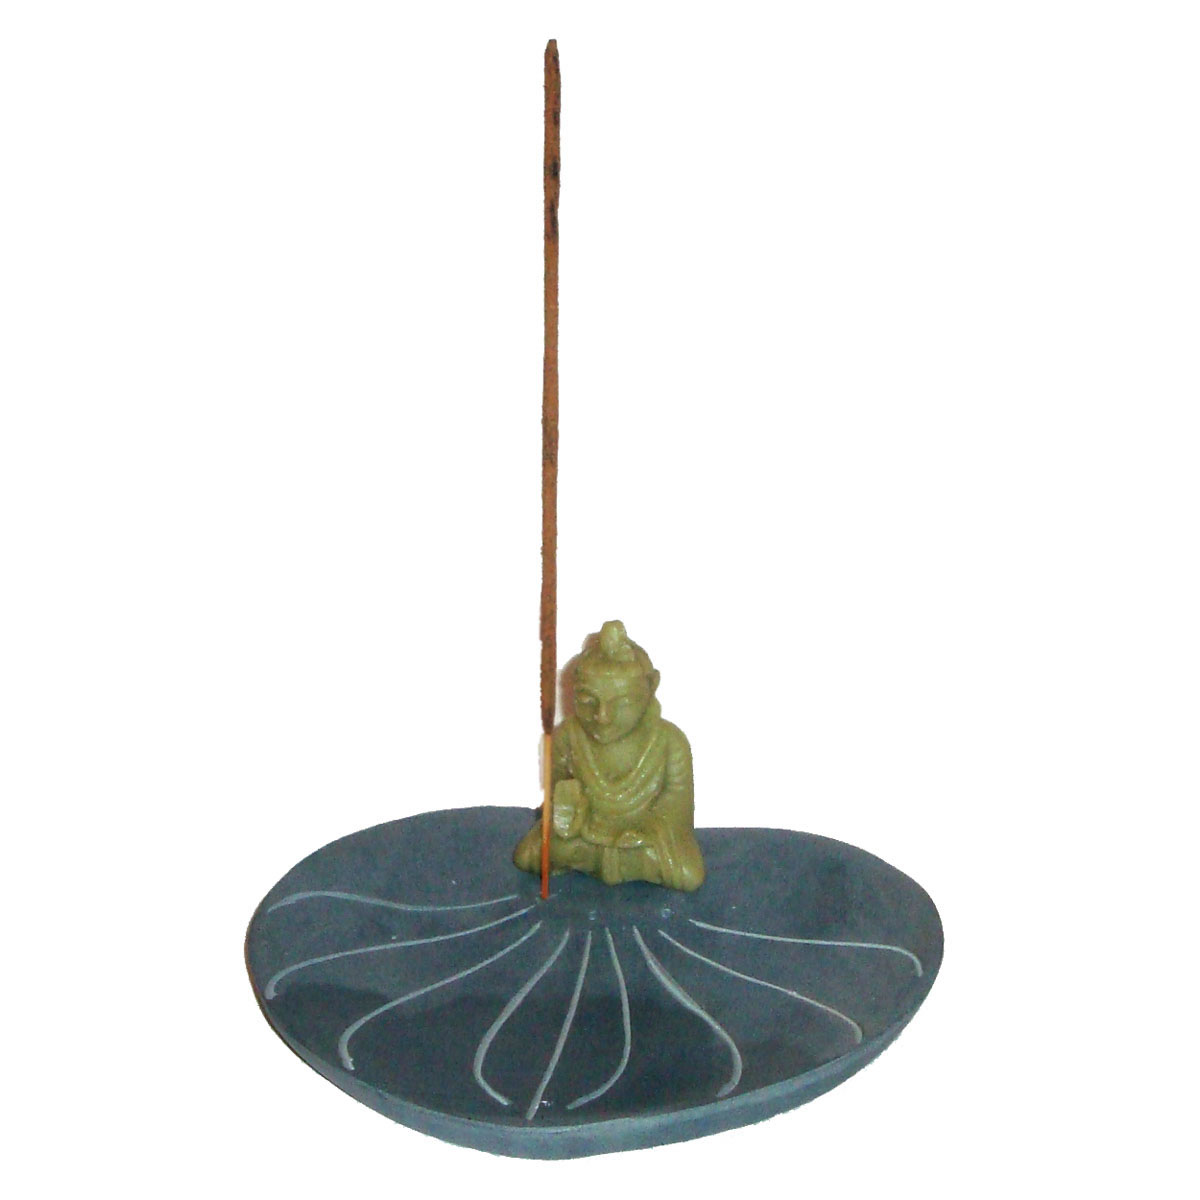 Incense Holder and Cone Burner - BUDDHA on STONE LEAF